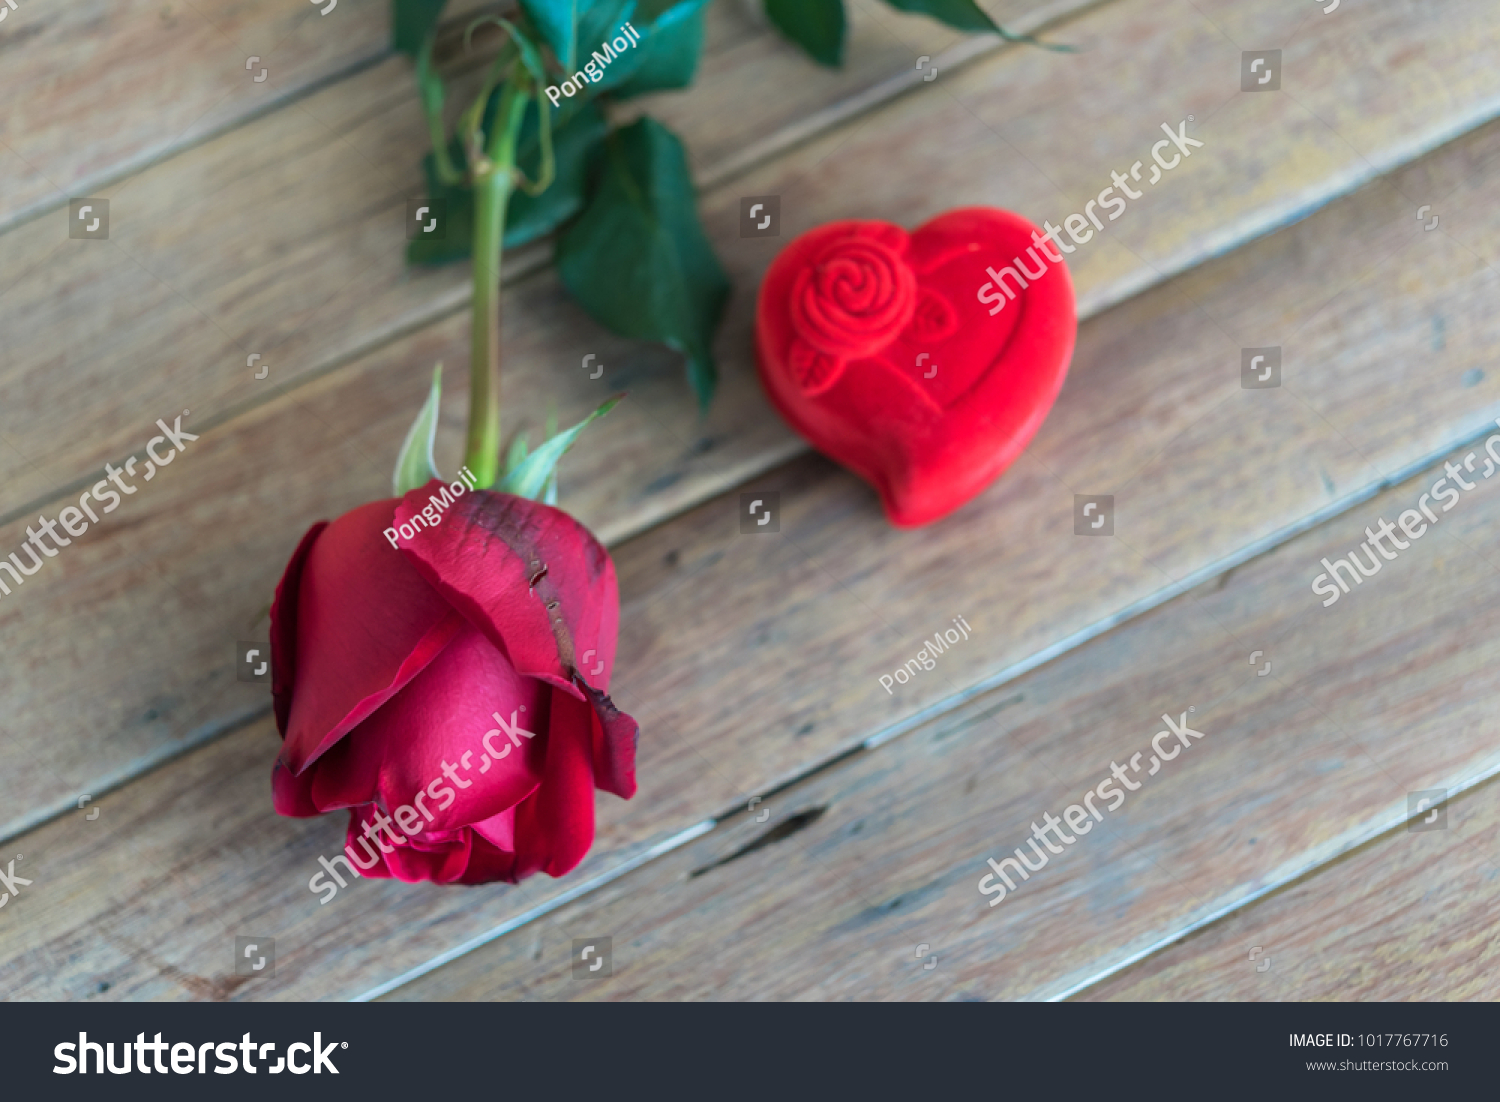 Red rose flower nature beautiful flowers stock photo edit now red rose flower nature beautiful flowers from garden and ring red box heart shape design for izmirmasajfo